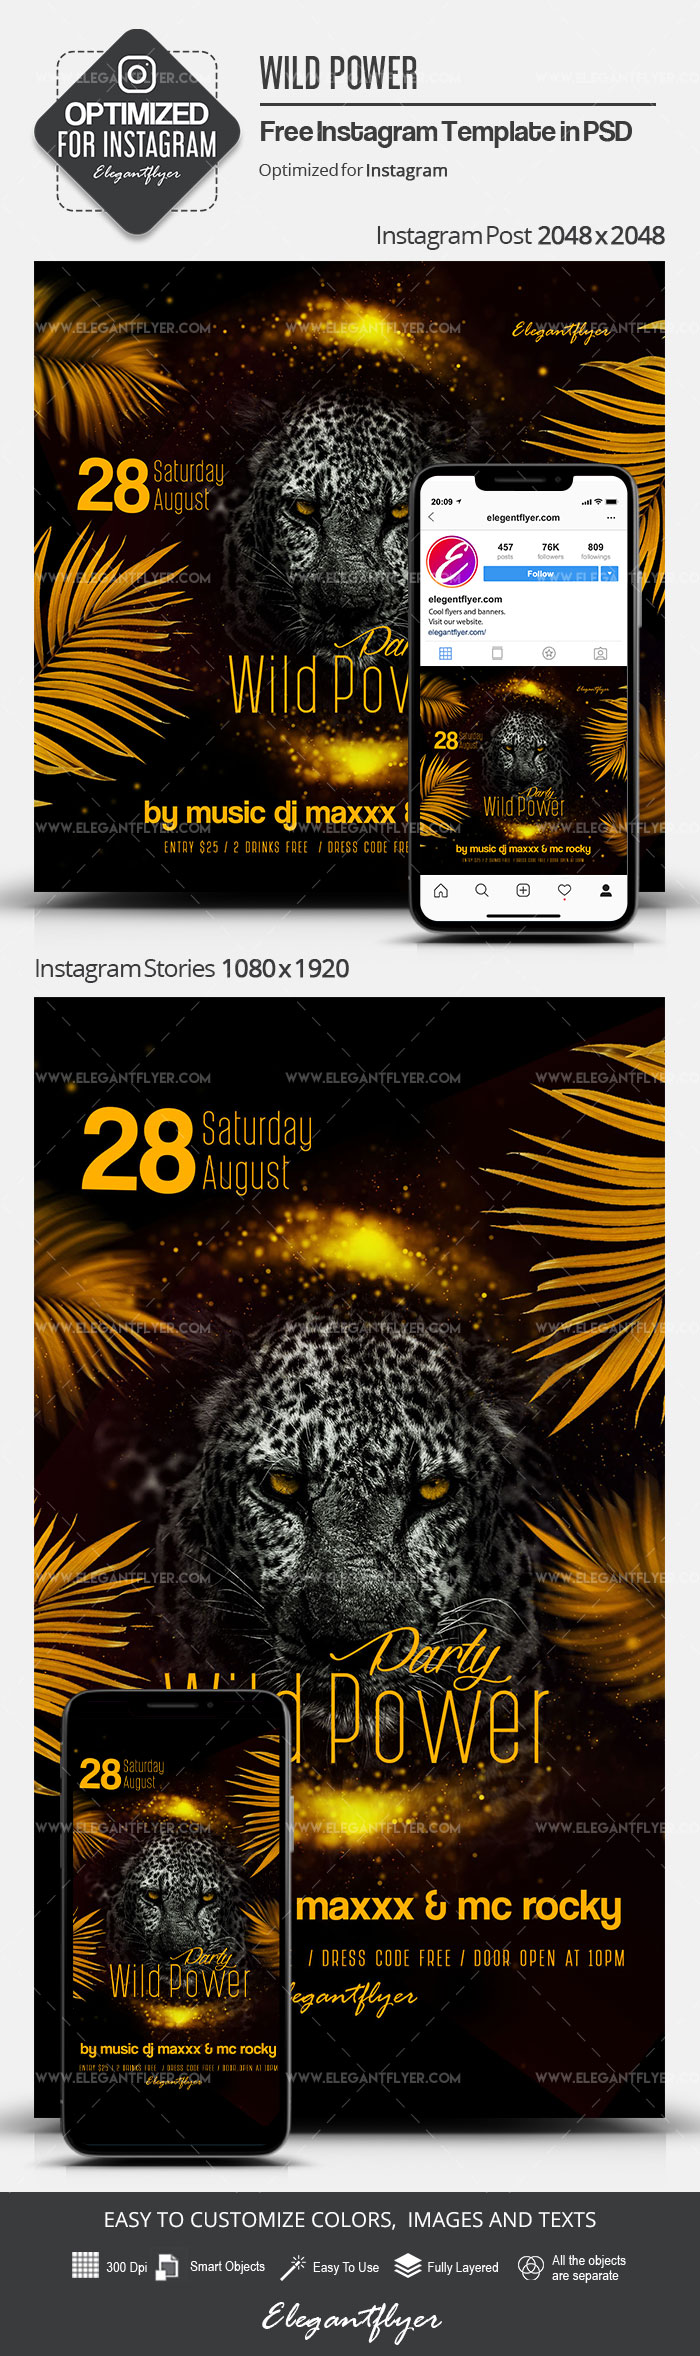 Wild Power Party – Free Instagram Stories Template in PSD + Post Templates